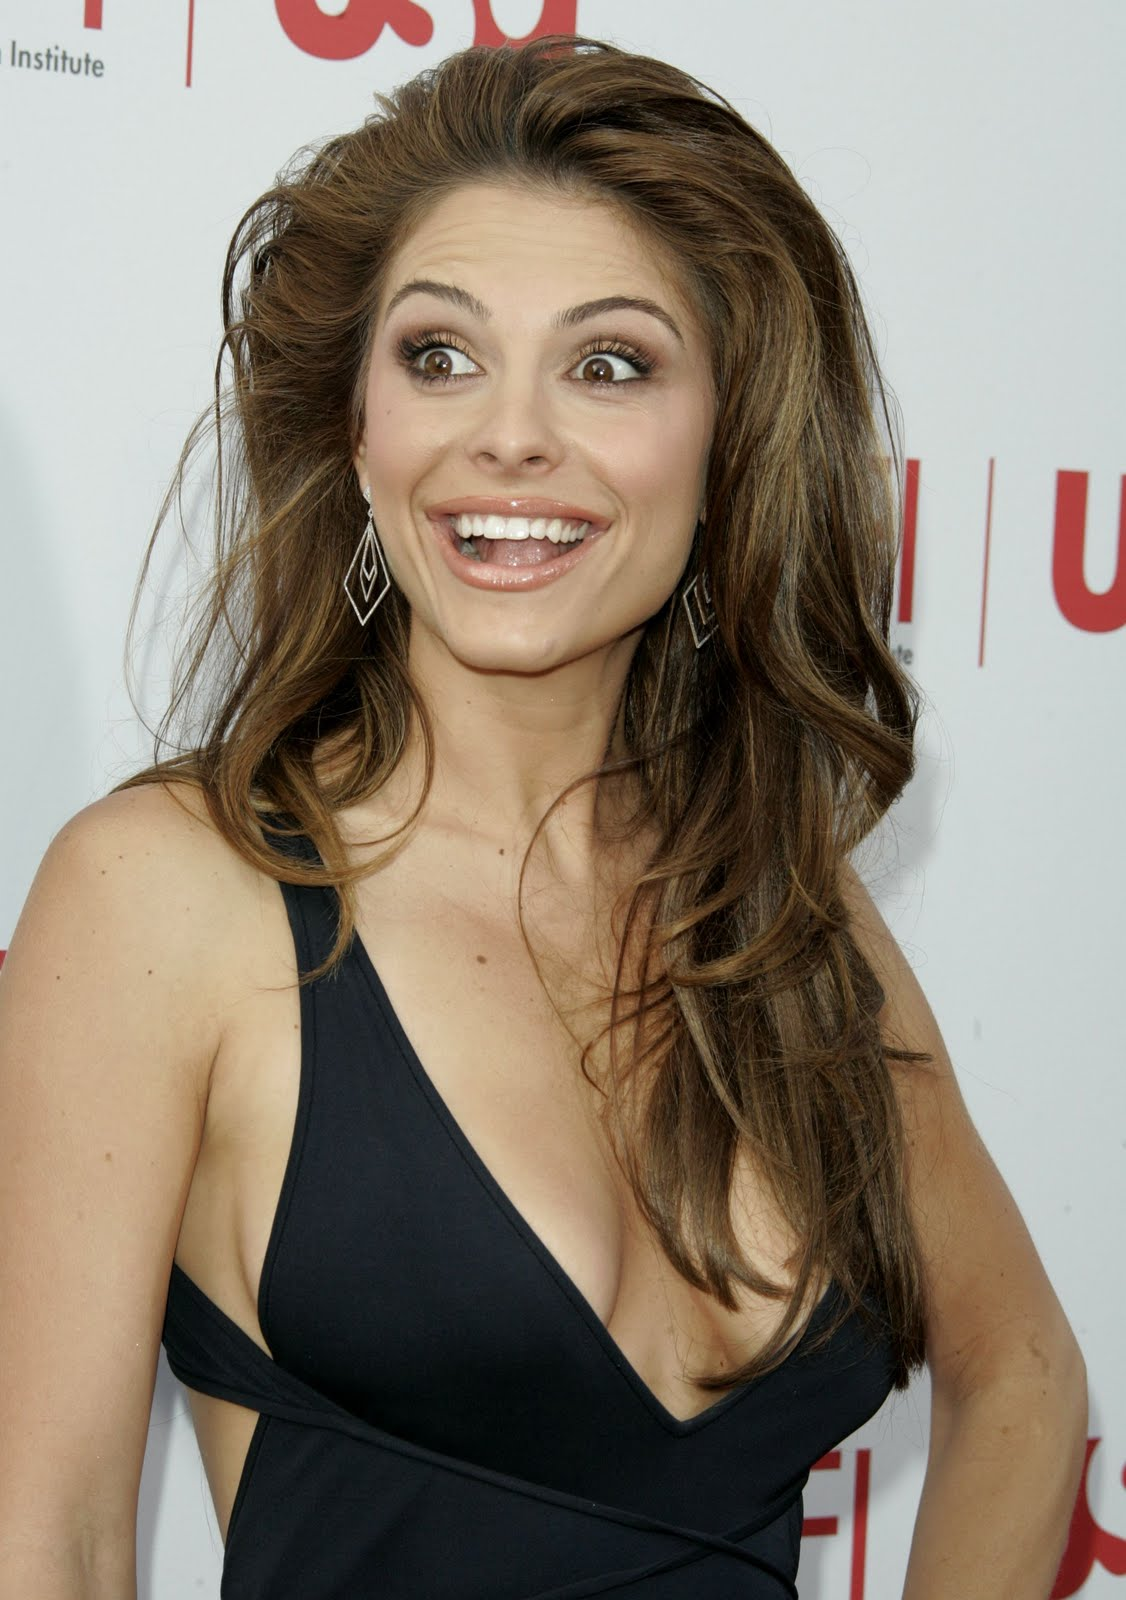 Maria Menounos - Actress Wallpapers